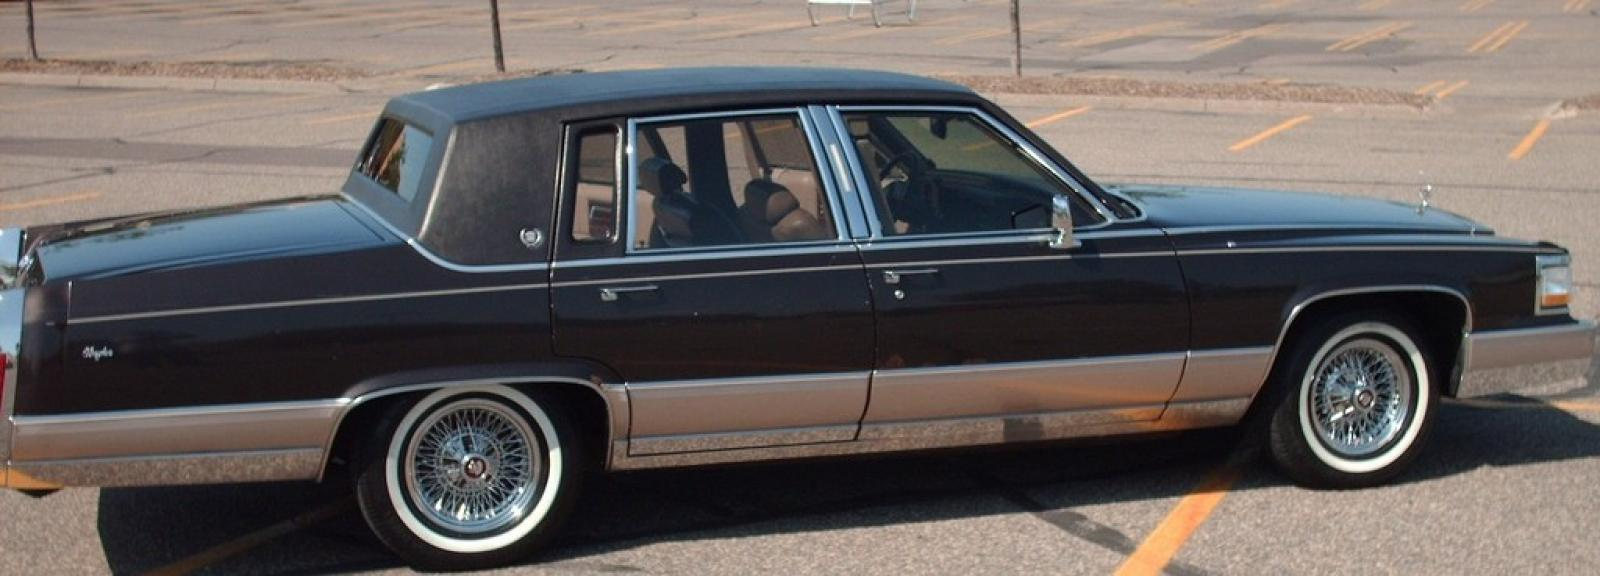 1991 Cadillac Fleetwood - Information and photos - ZombieDrive